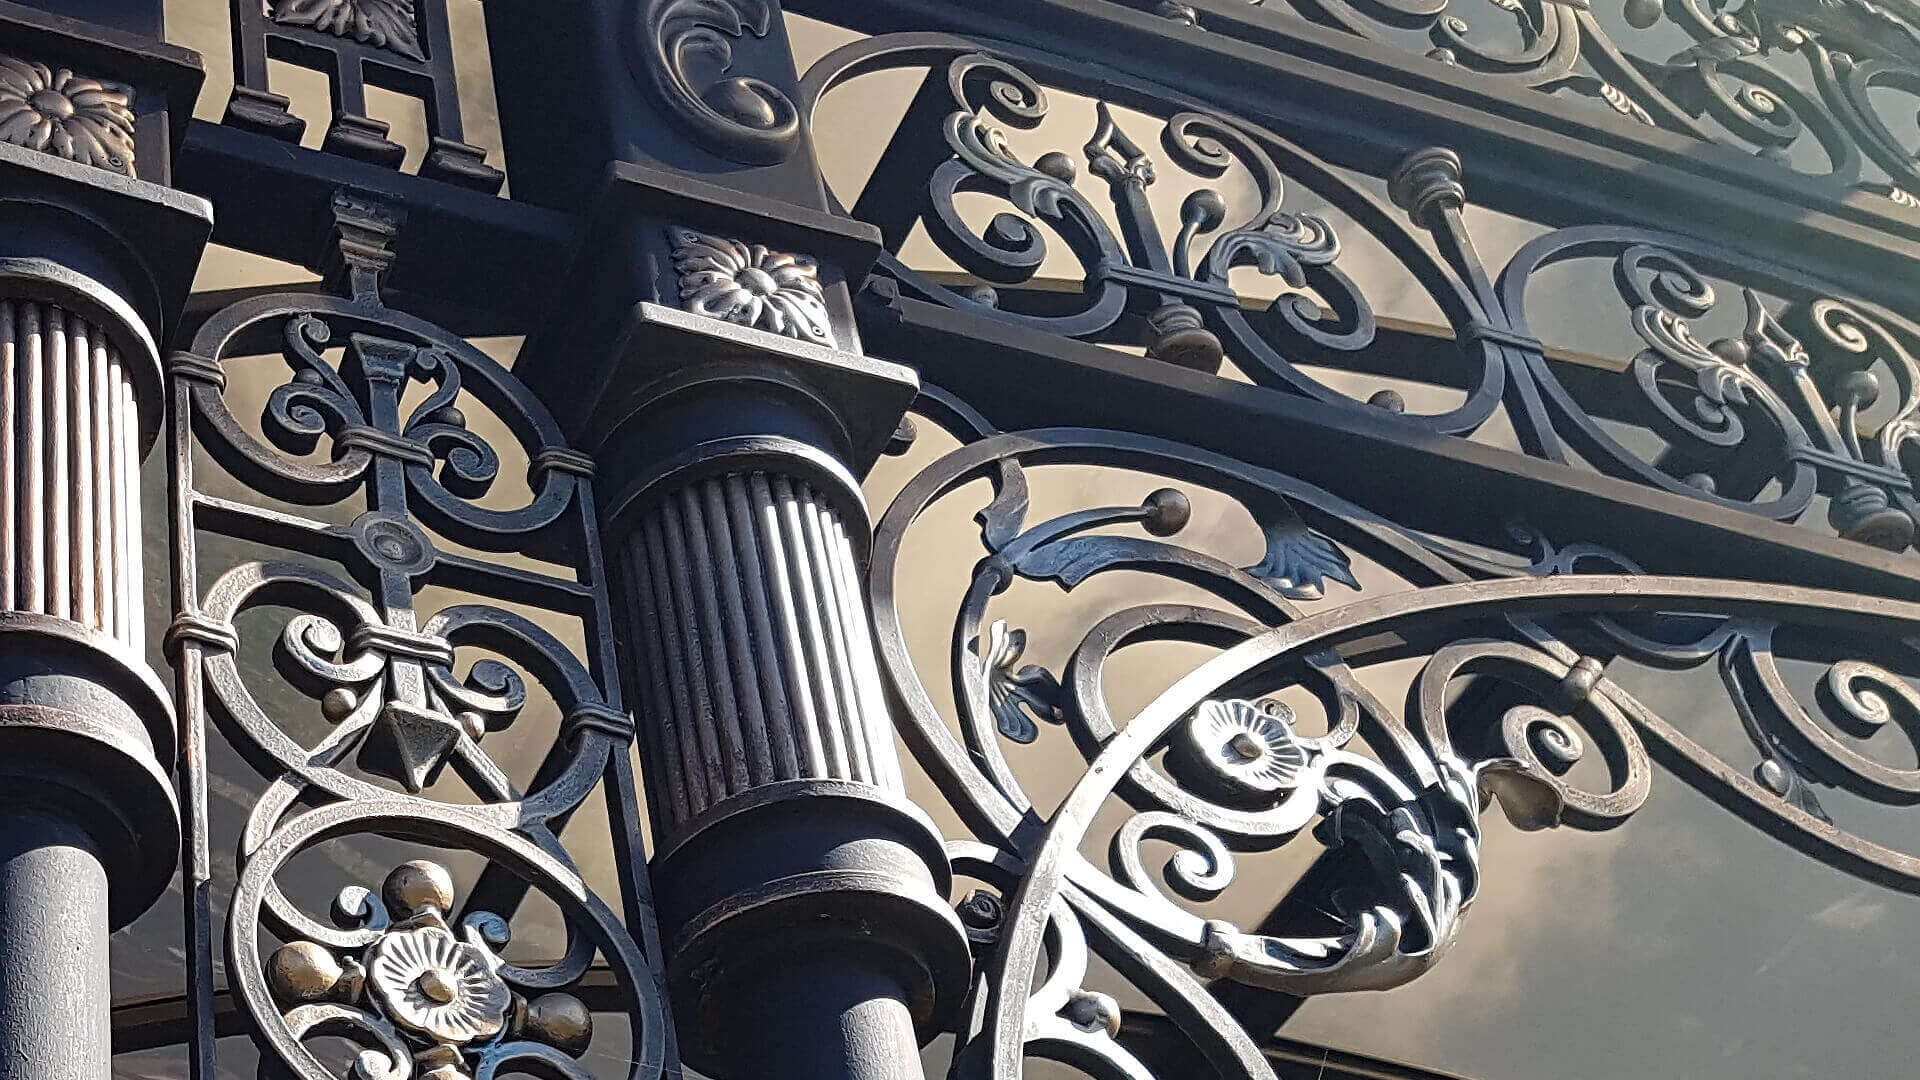 Artistic forging Kiev. Order wrought iron gates of a staircase, workshop. A company for the production of forged products in Kiev